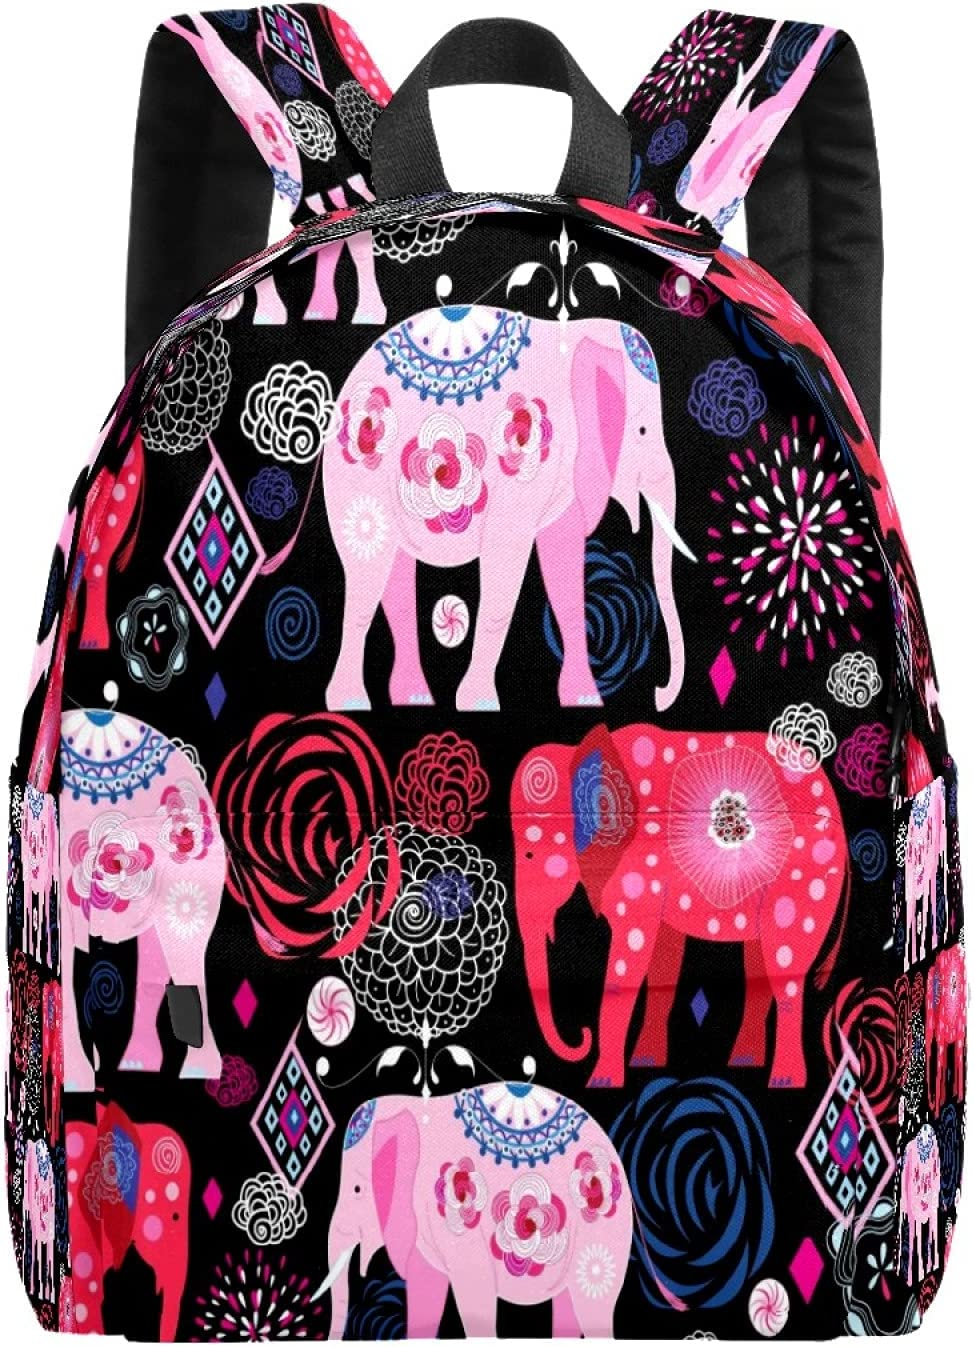 School Bag Backpack College Super beauty product restock quality Price reduction top Elephant Lightweig Casual